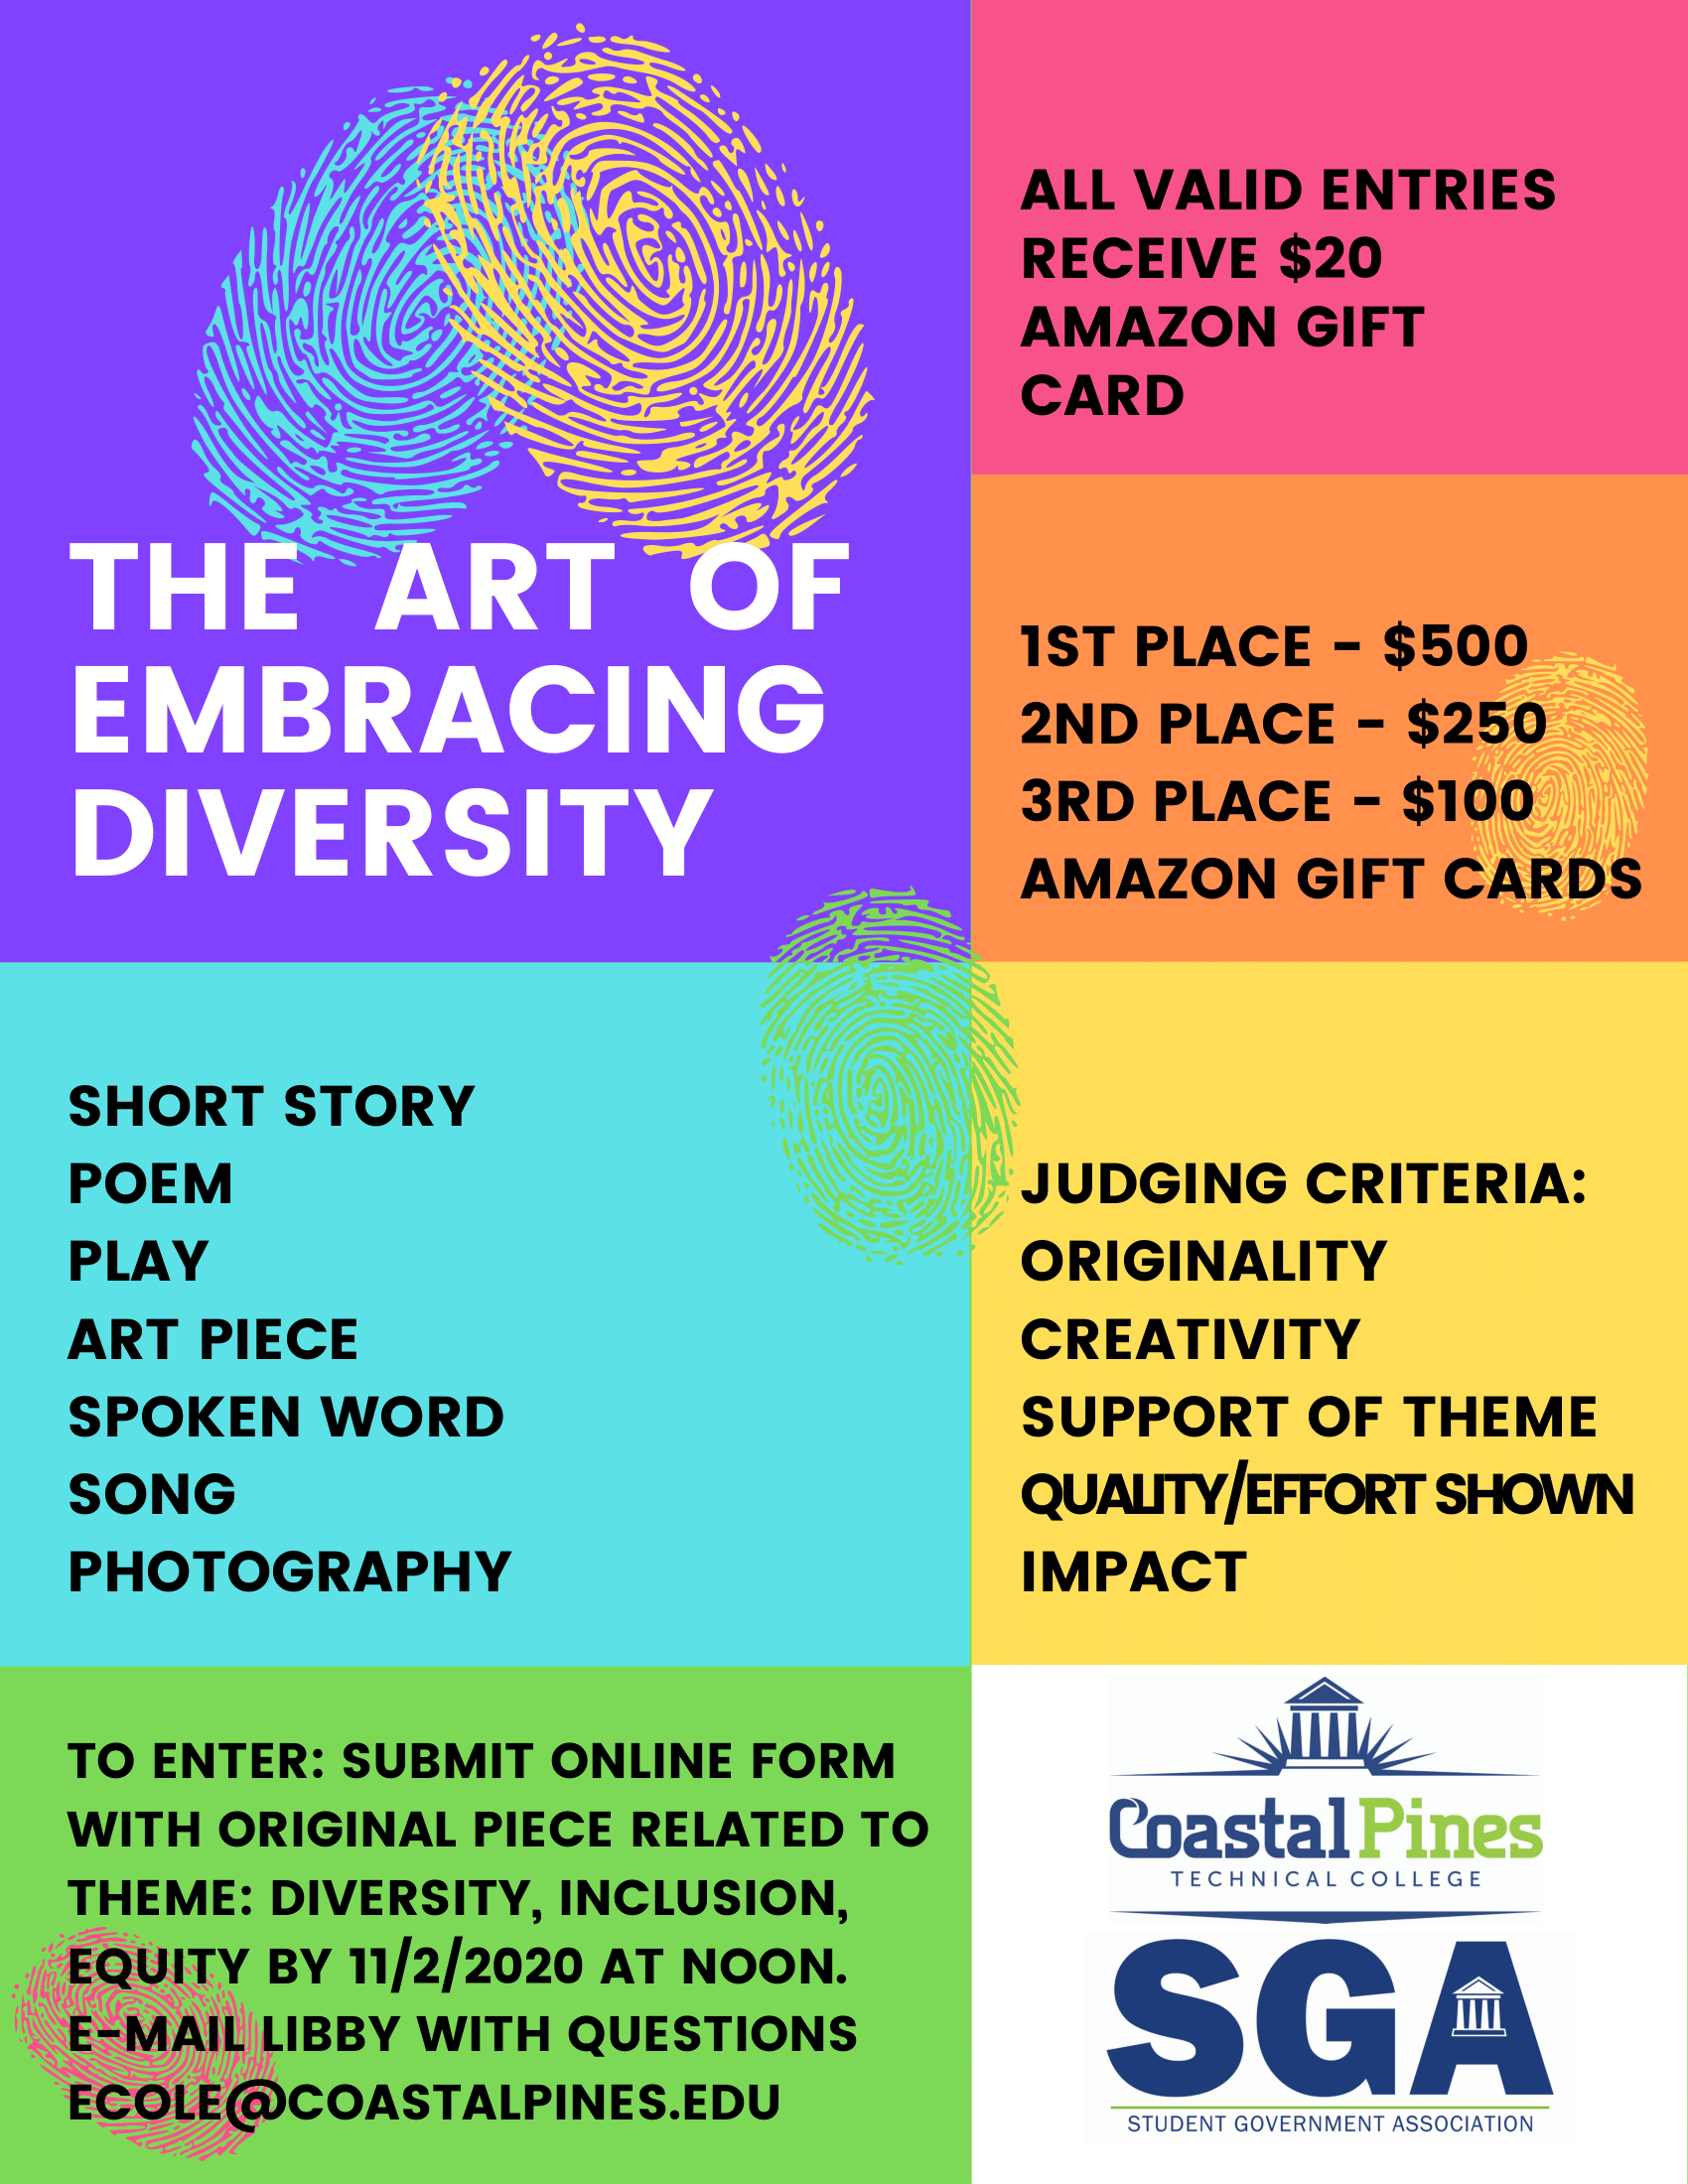 The Art of Embracing Diversity Flyer. All valid entries recieve $20 amazon gift card. 1st place - $500, 2nd Place - $250, 3rd Place- $100 Amazon Gift cards.Short Story, poem, play, art piece, spoken word, song, photography. Judging criteria: originality, creativity, support of theme, quality/effort shown, impact. To enter: submit online form with original piece related to theme: Diversity, inclusion, equity by 11/2/2020 at noon. E-mail Libby with questions ecole@coastalpines.edu